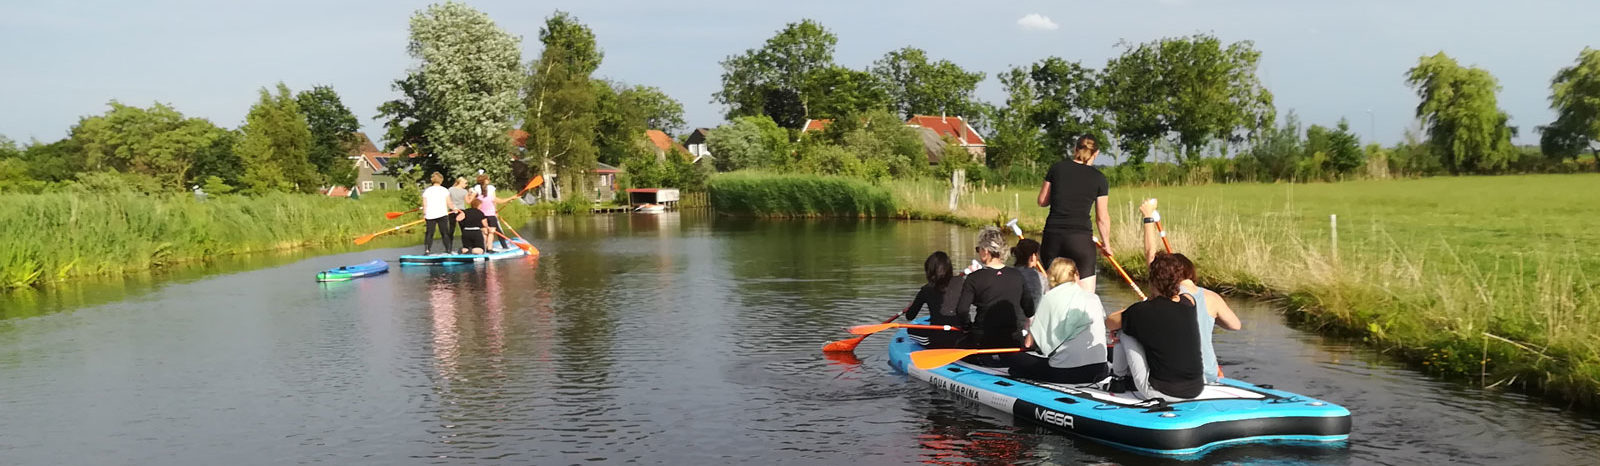 Discover Twiske & Waterland